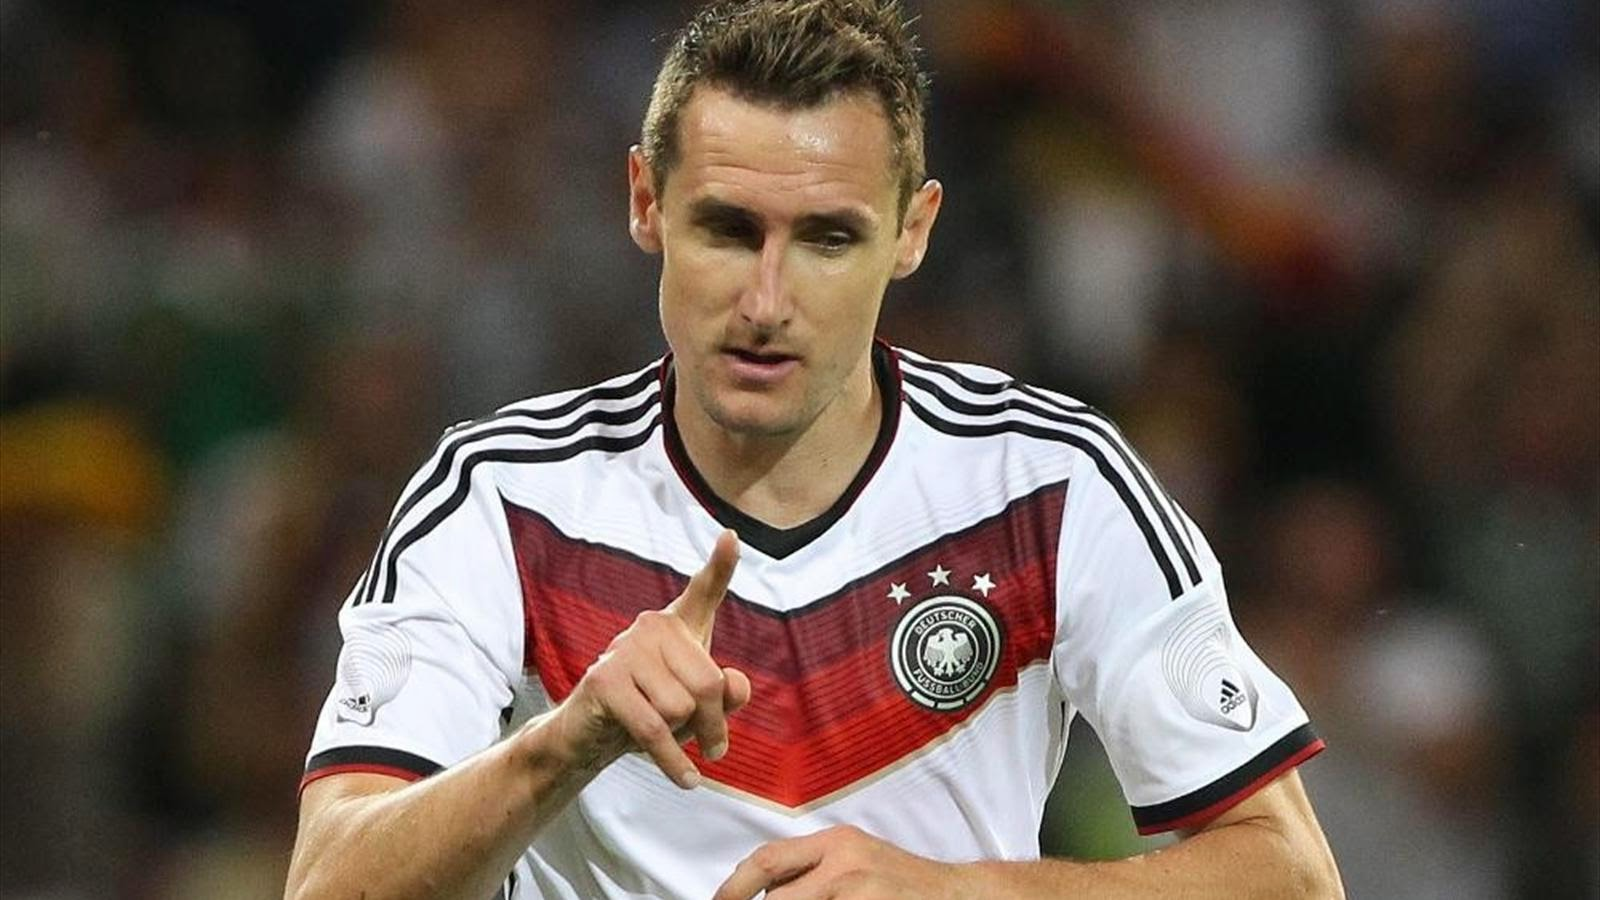 5 Less Know Facts About Miroslav Klose